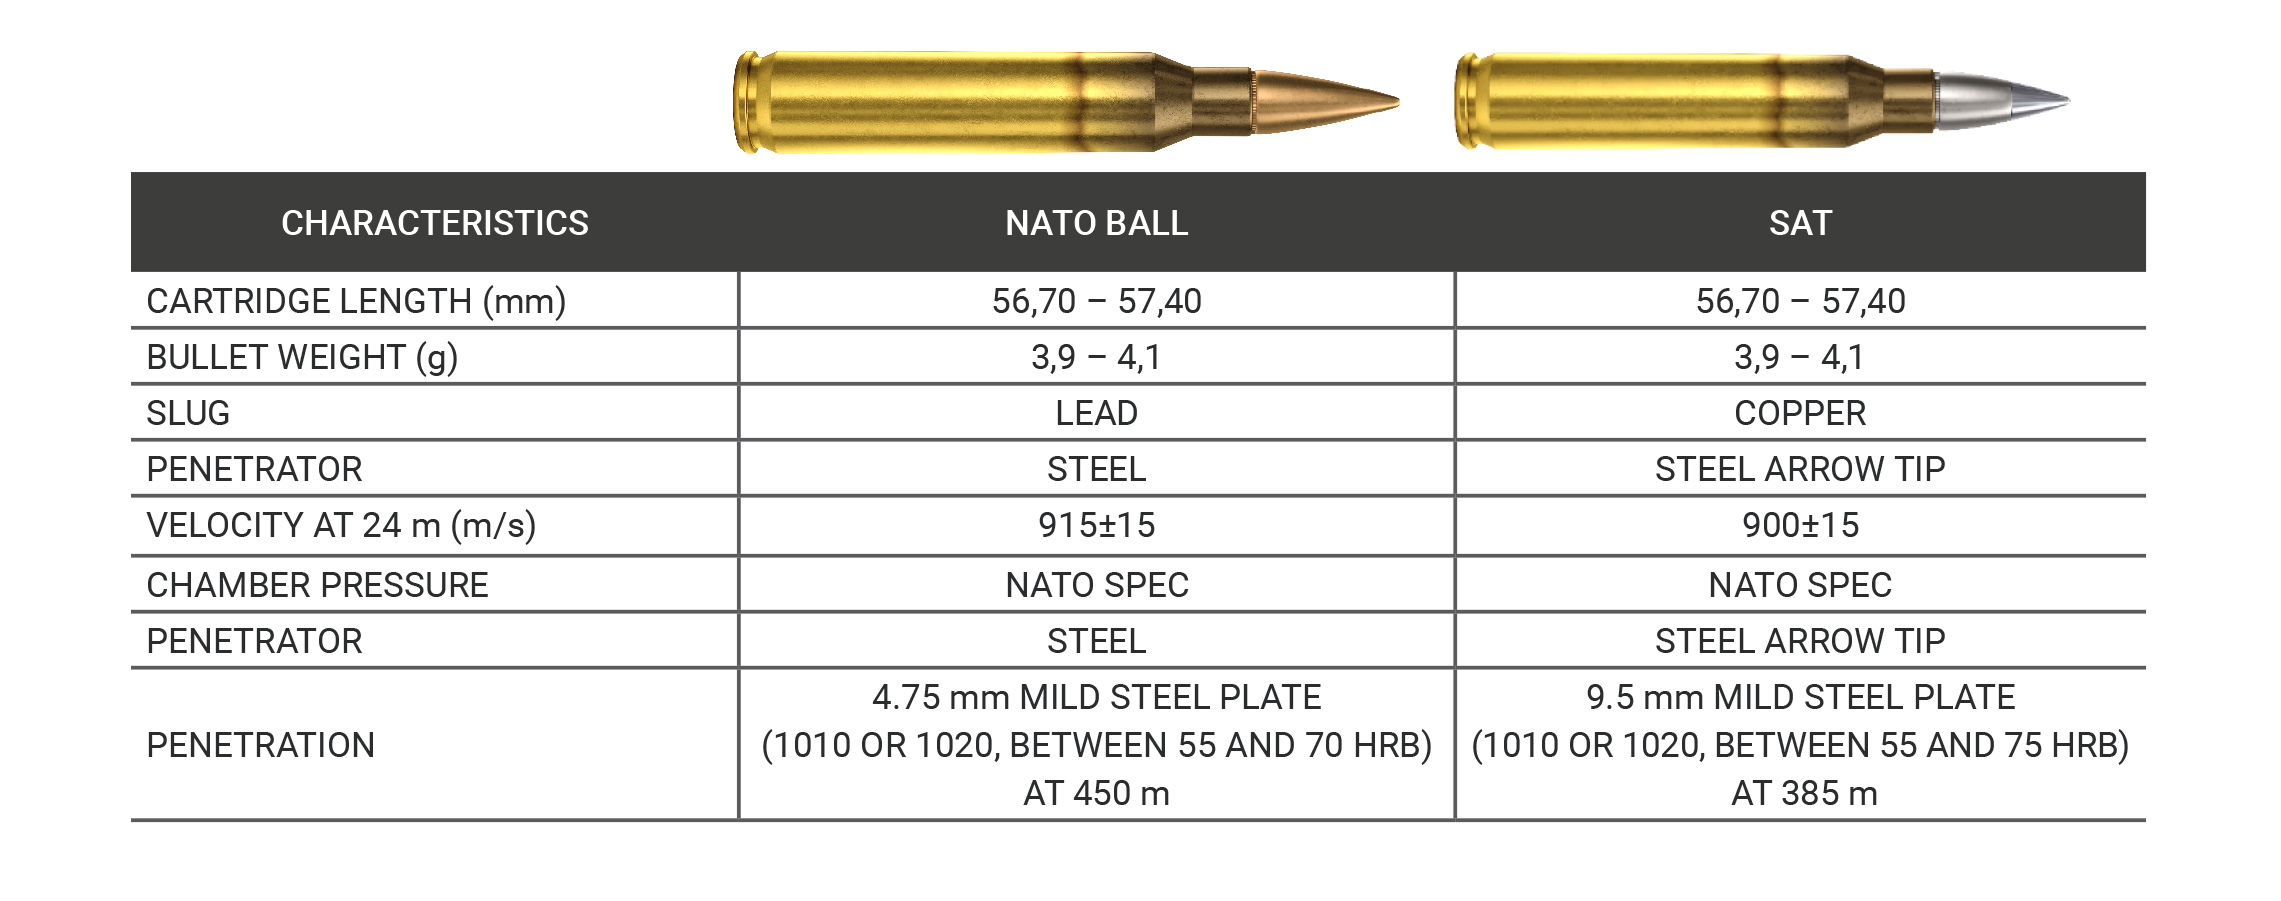 COMPARISON CHART - 5.56 NATO BALL VS. 5.56 SAT